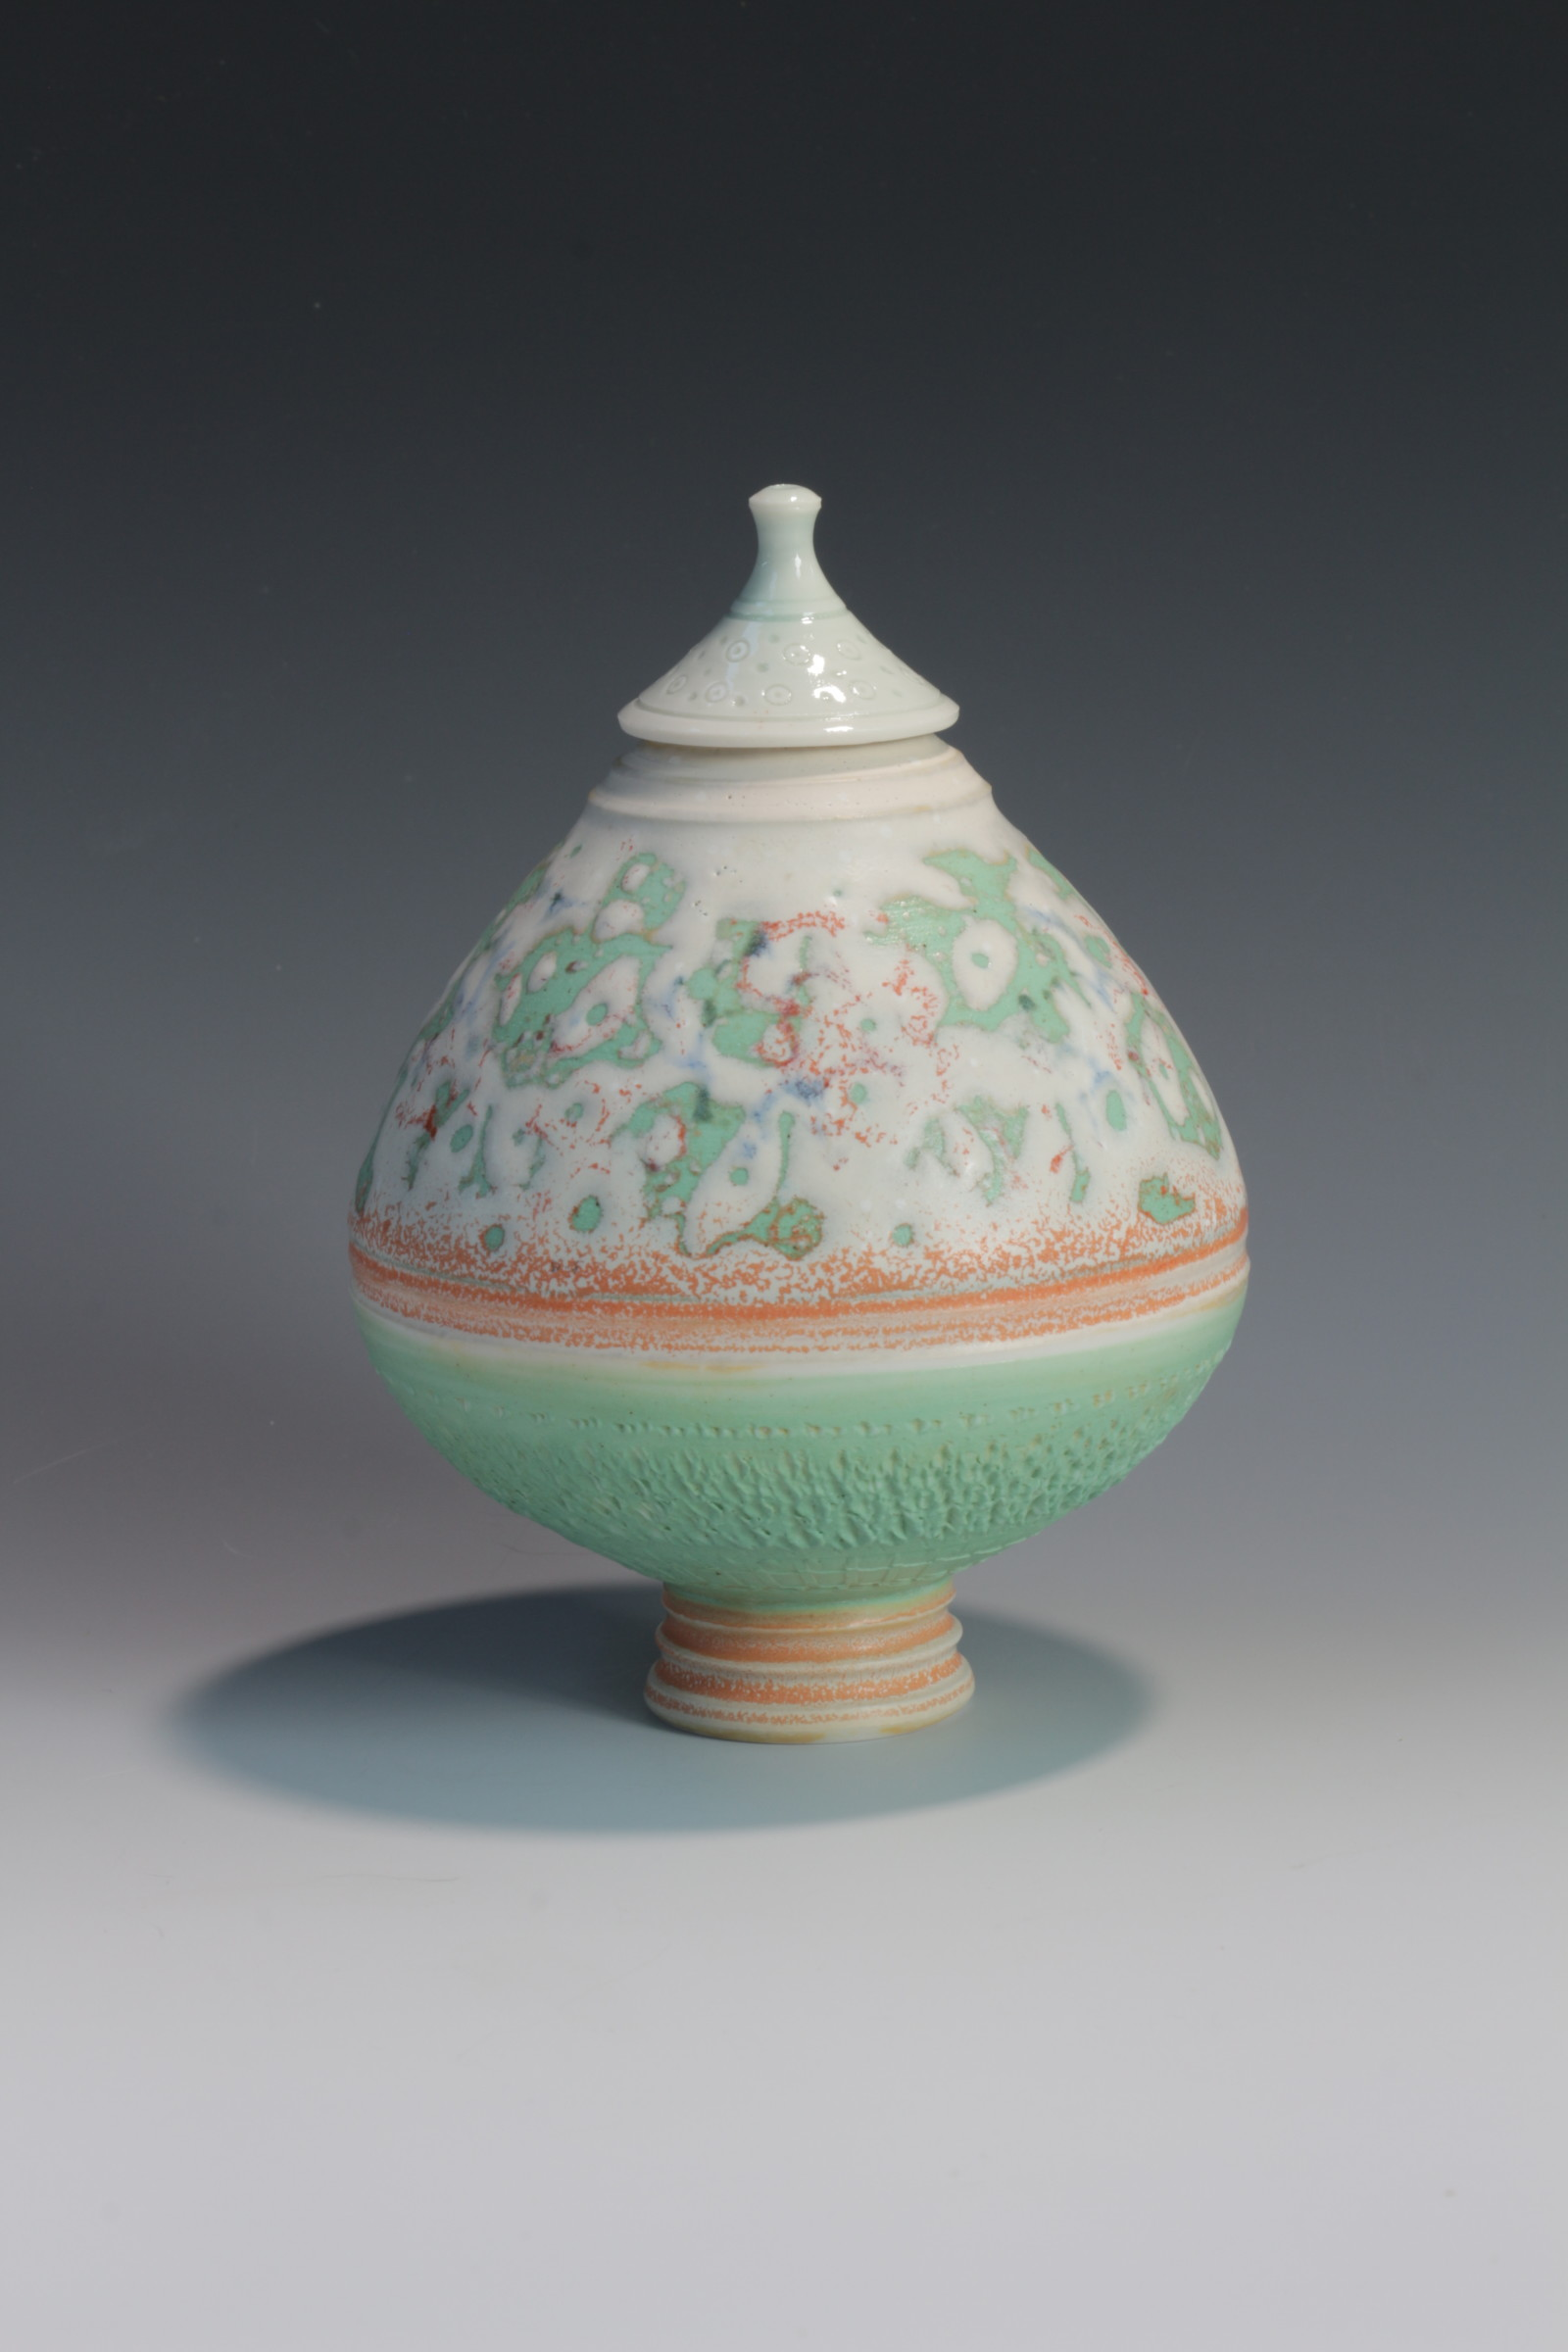 "<span class=""link fancybox-details-link""><a href=""/artists/61-geoffrey-swindell/works/6551-geoffrey-swindell-lidded-pot-2019/"">View Detail Page</a></span><div class=""artist""><strong>Geoffrey Swindell</strong></div> <div class=""title""><em>Lidded Pot</em>, 2019</div> <div class=""signed_and_dated"">Stamped on bottom</div> <div class=""medium"">Porcelain</div><div class=""copyright_line"">Ownart £17.50 x 10 Months 0% APR</div>"